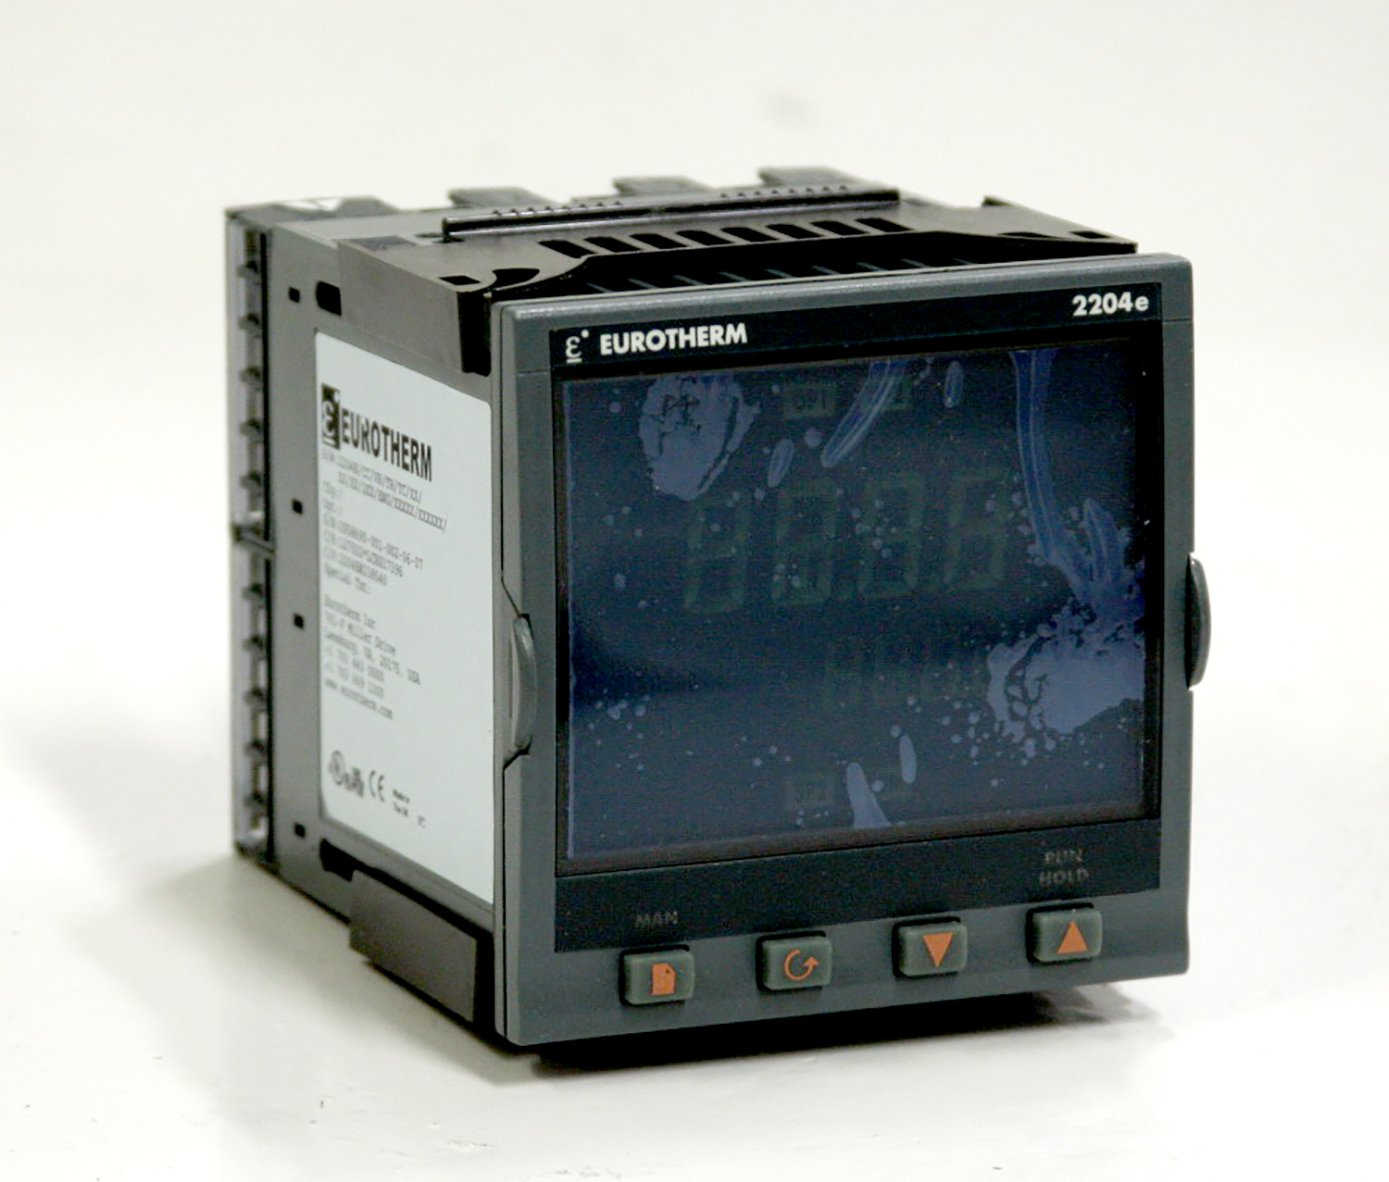 Eurotherm PID Temperature Controller model 2204e